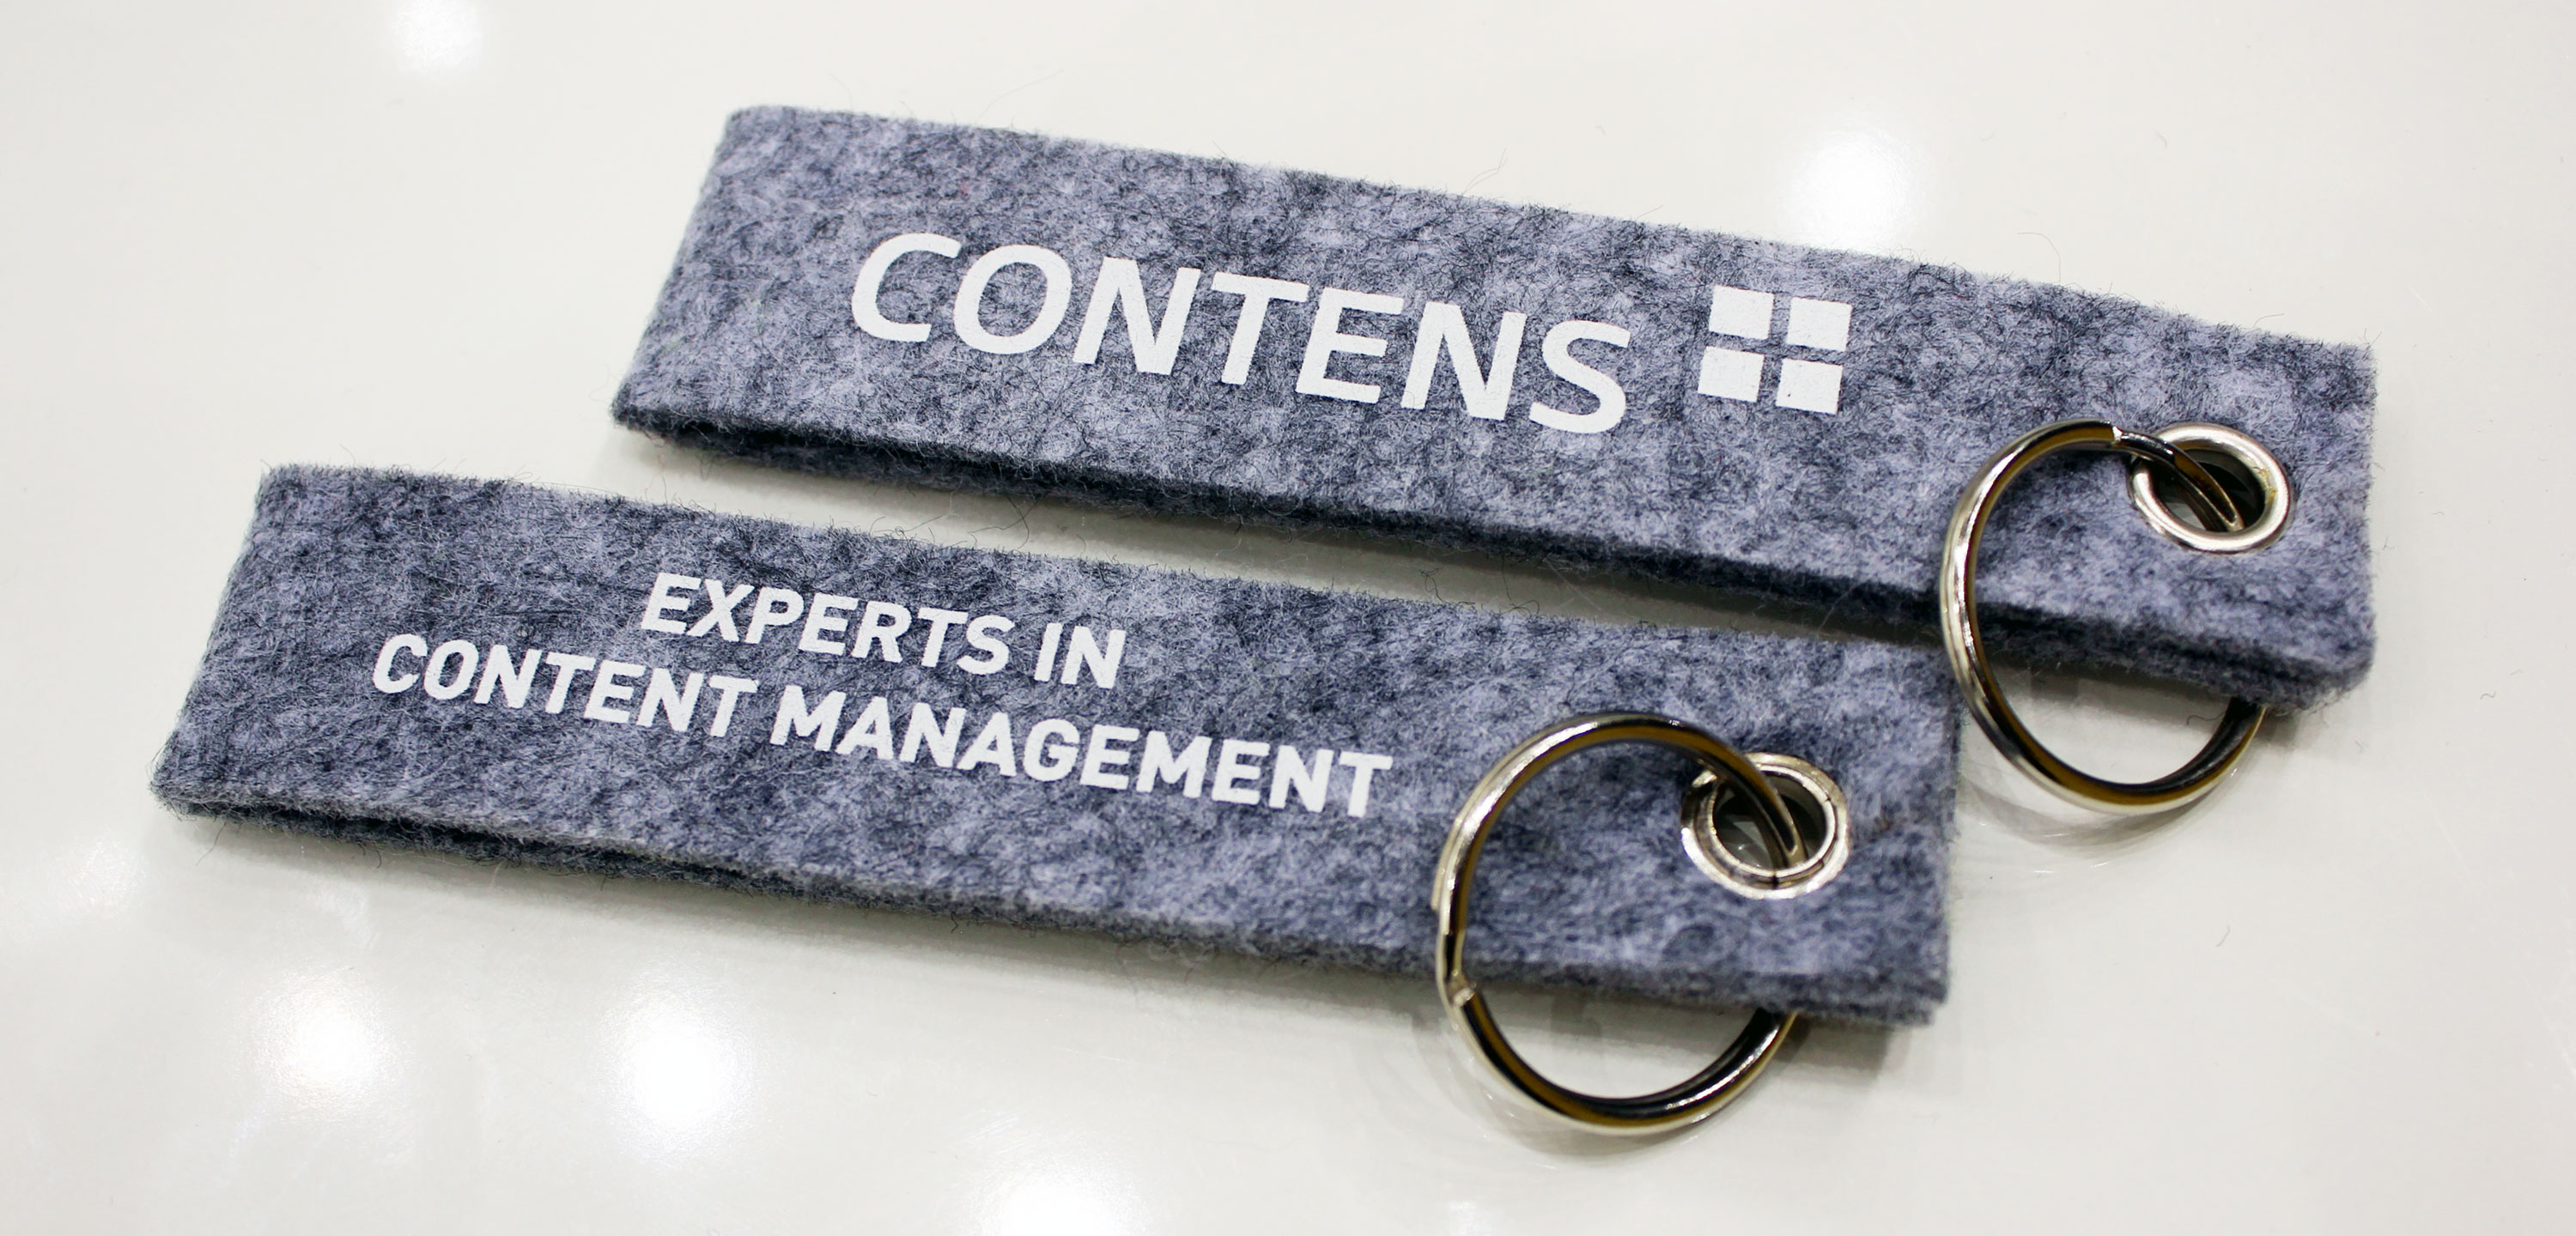 CONTENS Experts in Content Management